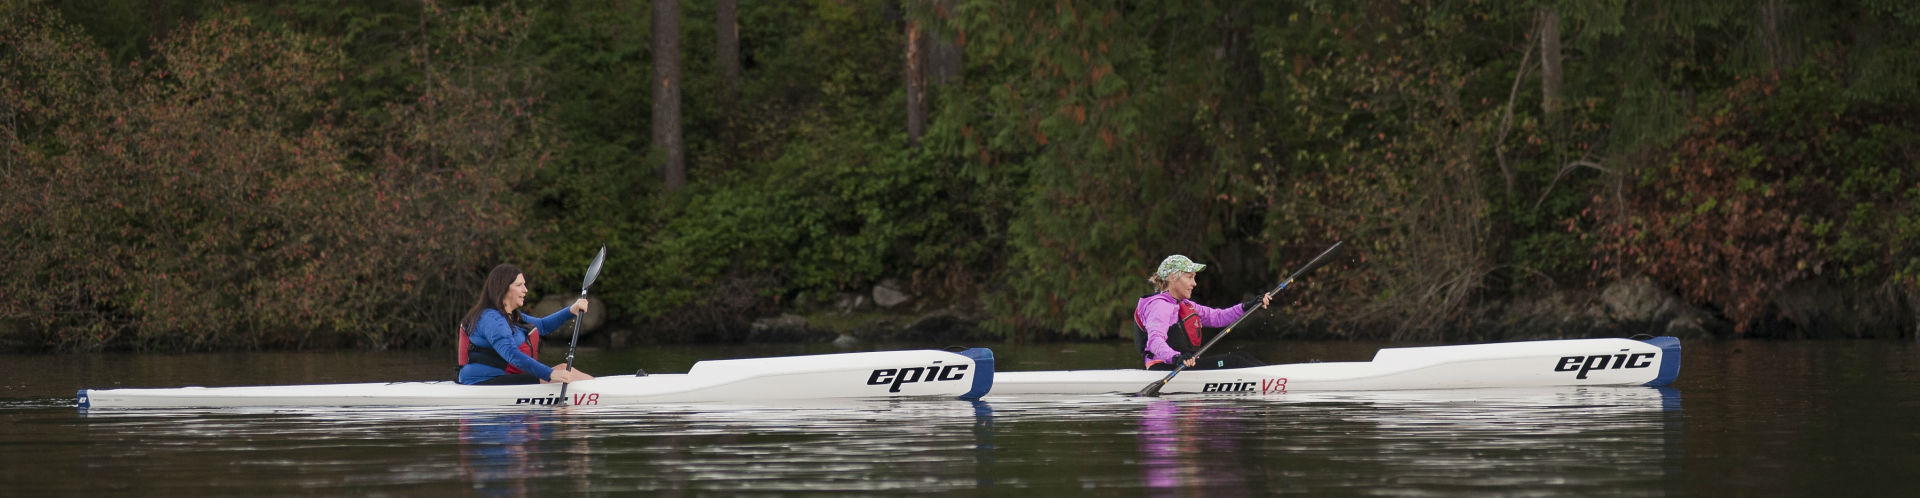 Surfskiing in Deep Cove